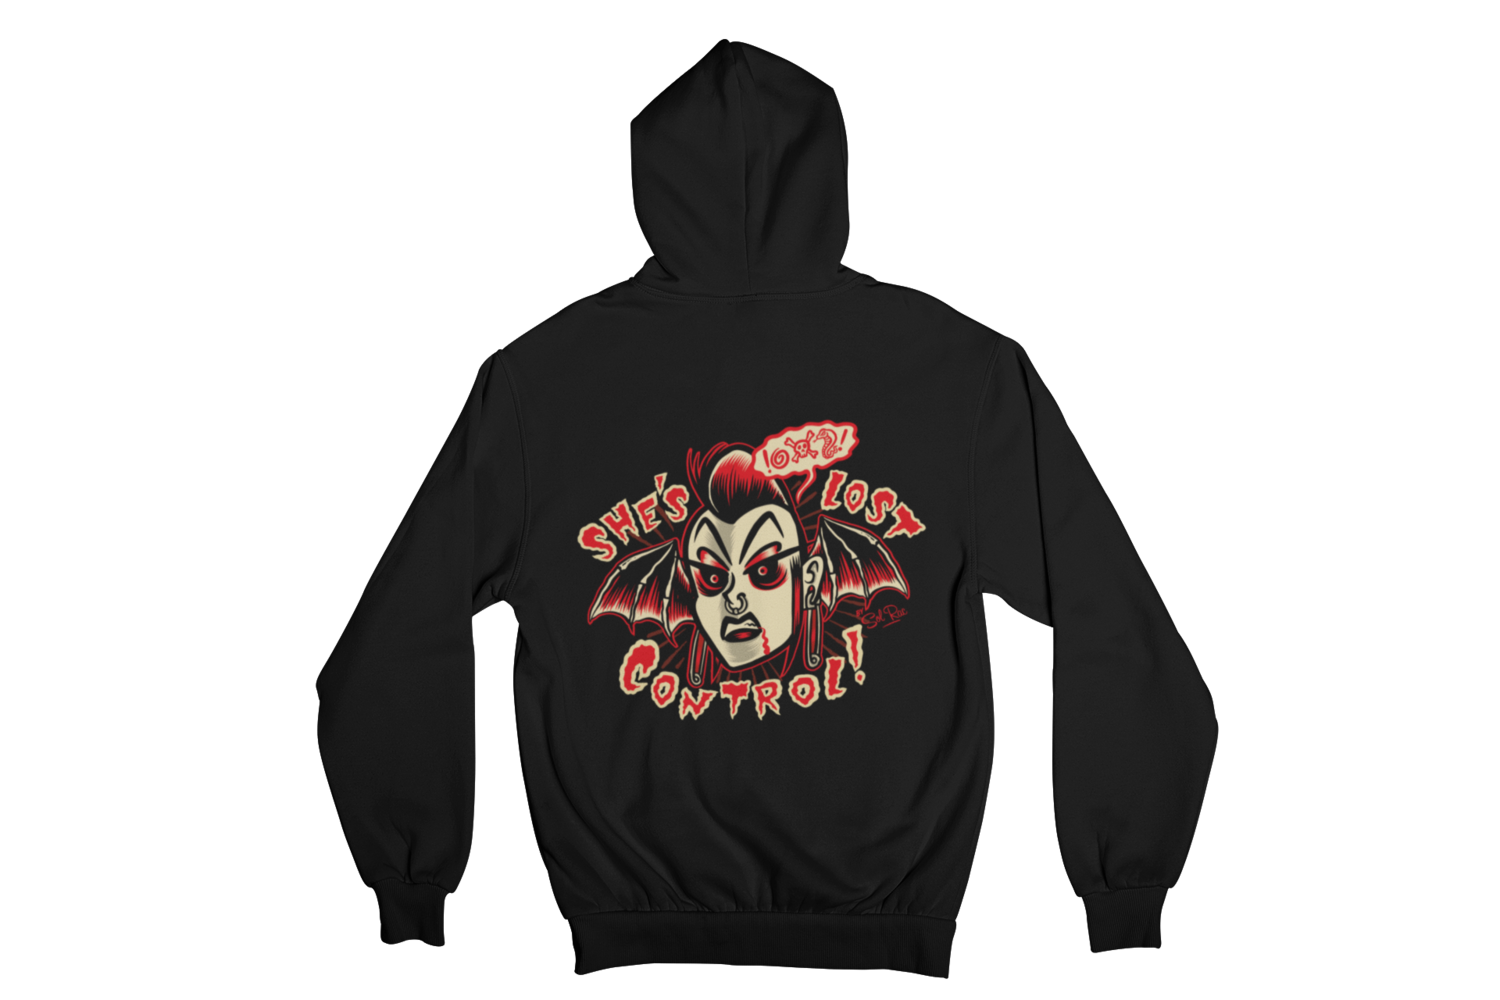 SHE´S LOST CONTROL HOODIE ZIP for MEN by SOL RAC